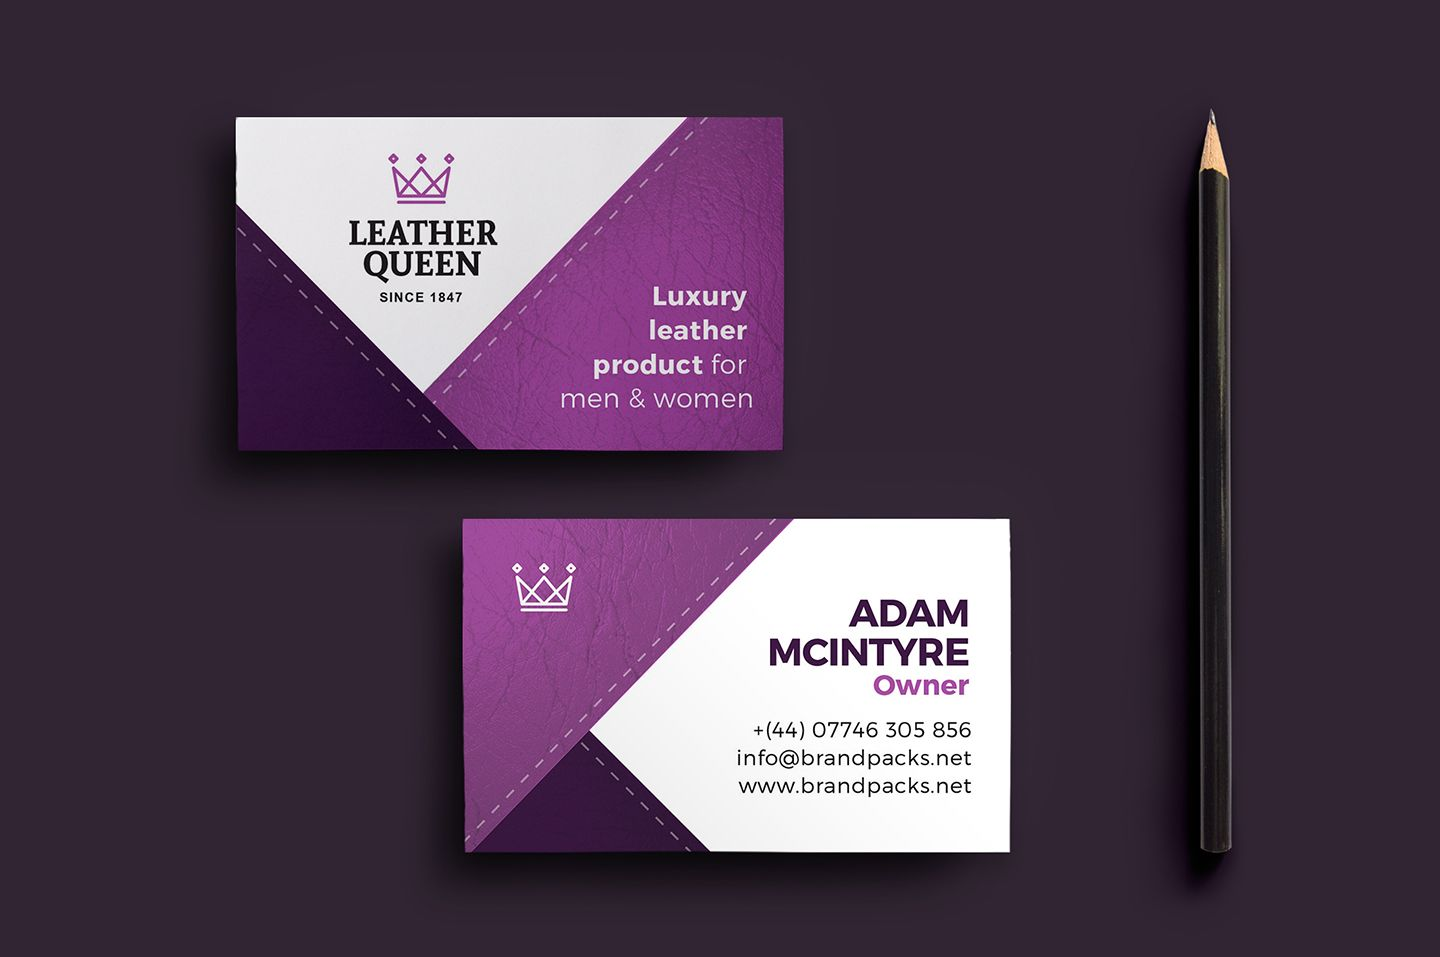 Free business card template for local shop owners works with free business card template for local shop owners works with adobephotoshop adobeillustrator flashek